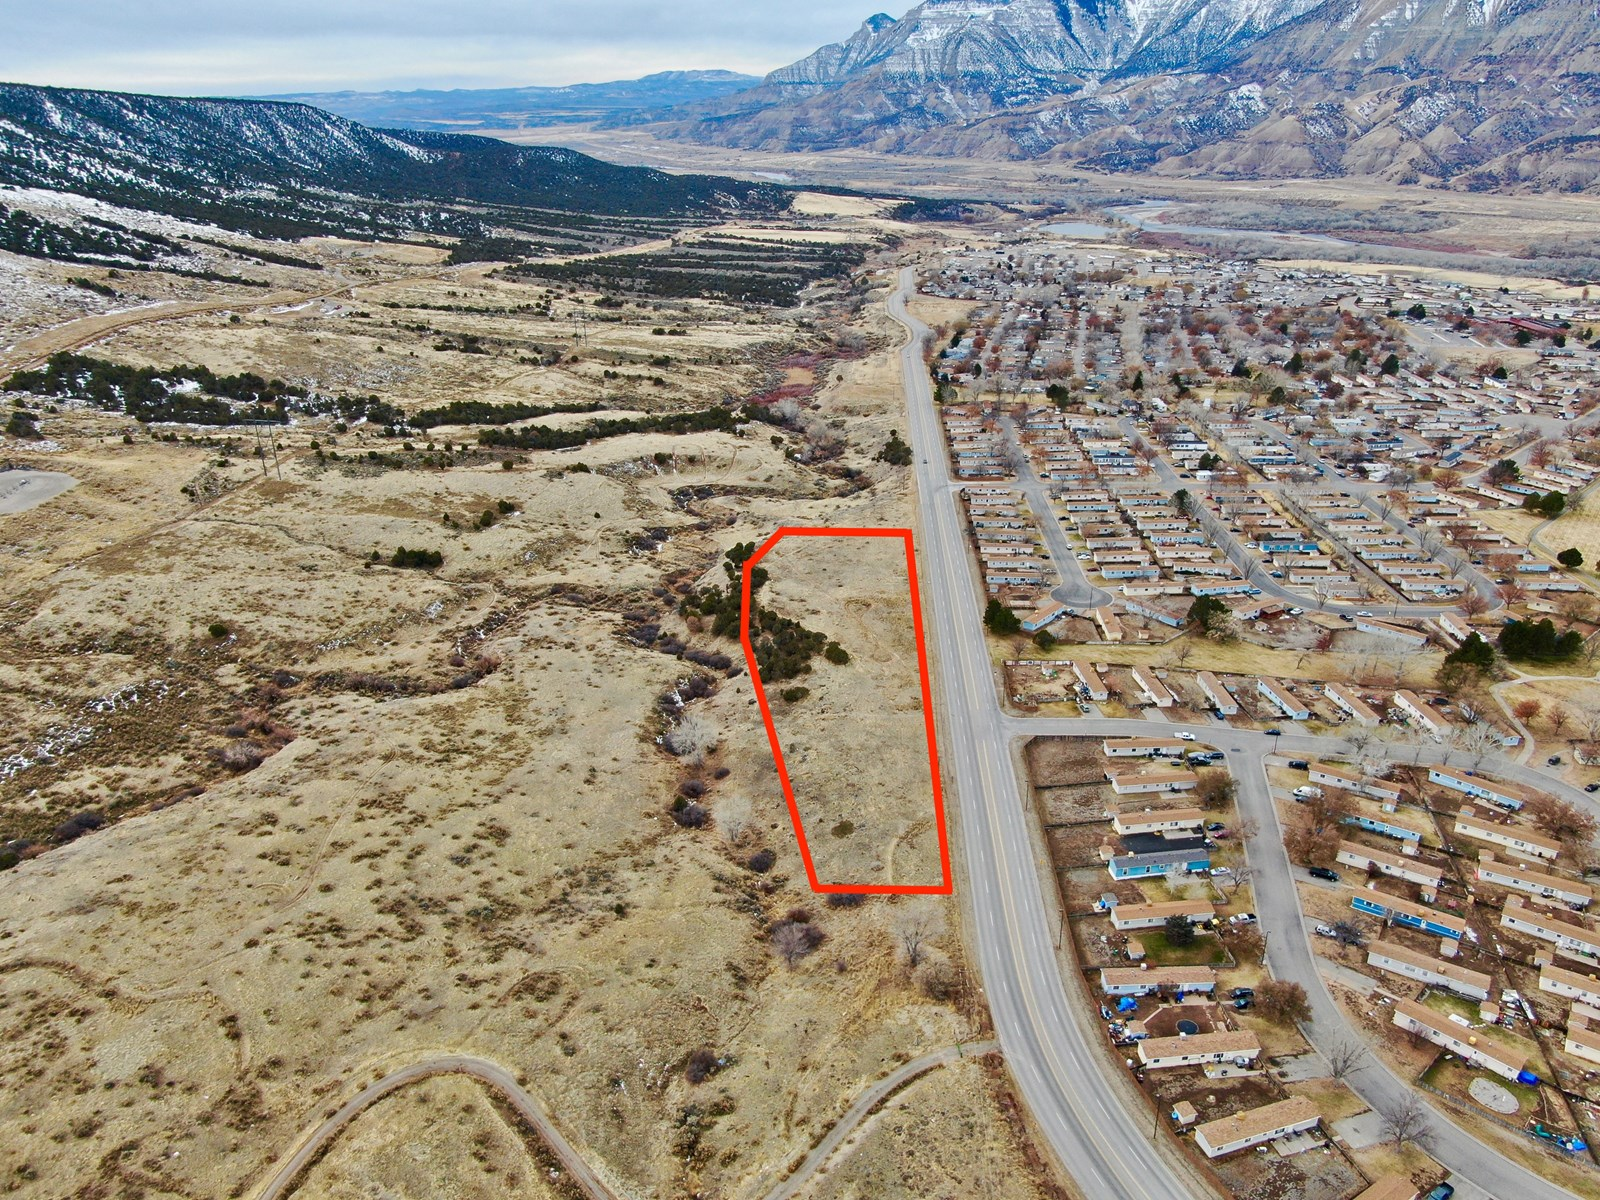 Mini Storage Development Land For Sale, Battlement Mesa